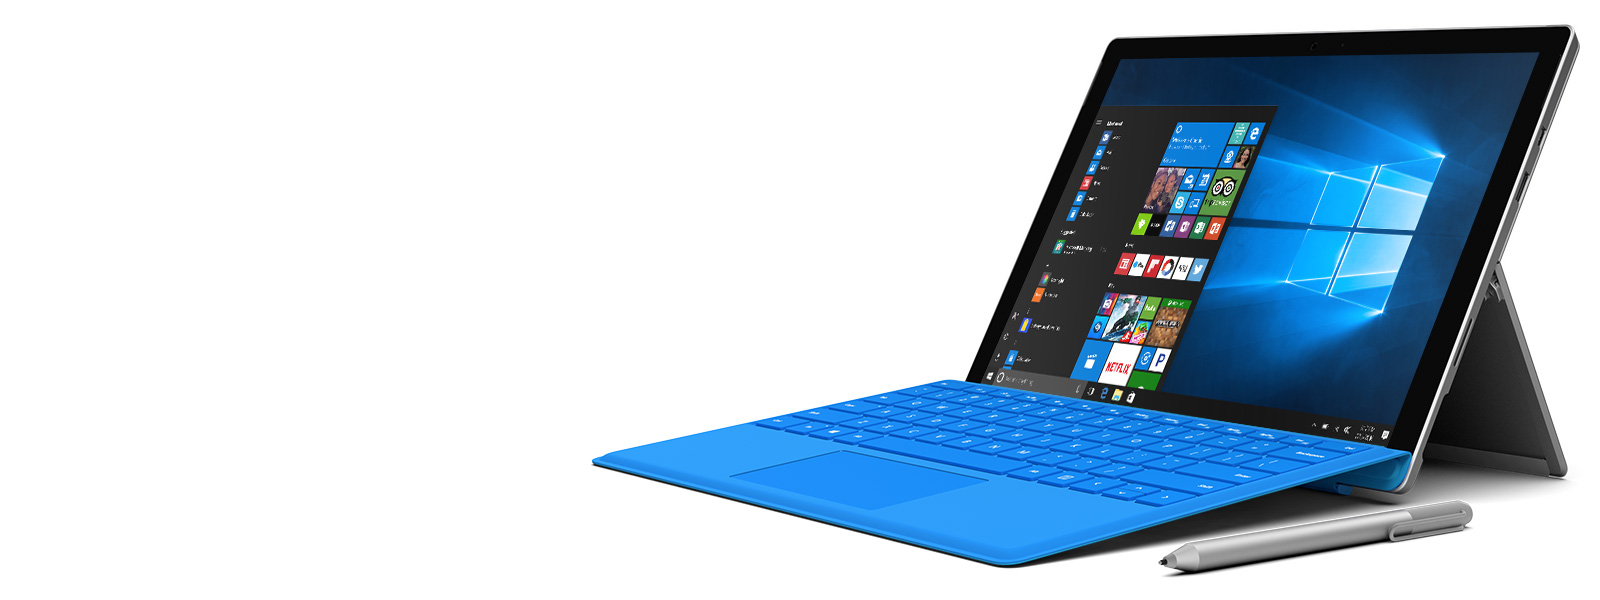 Surface Pro 4 with Surface Pen next to it and a Windows 10 start menu open on screen